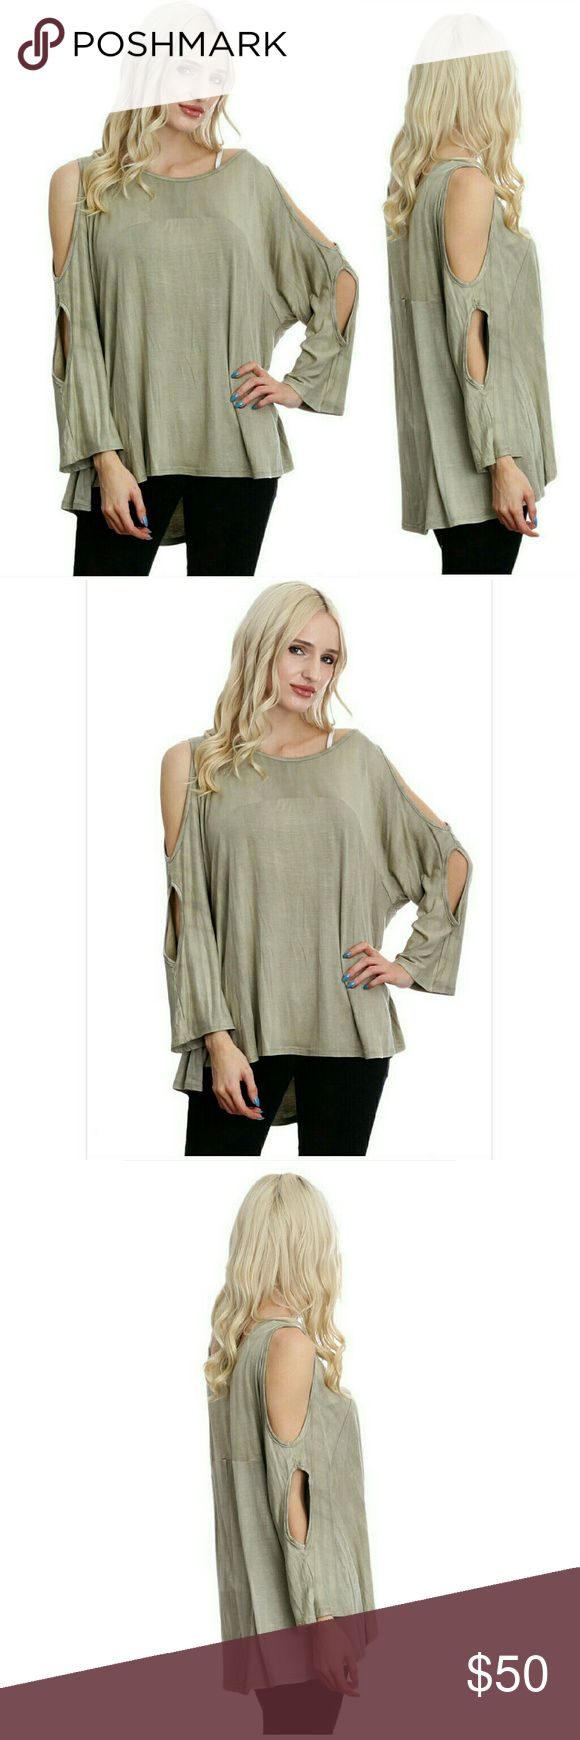 ⭐NEW! Gorgeous Olive Cut Out Blouse Absolutely Gorgeous!   Olive  Scoop Neck  Unique cut out sleeve design Beautiful Quality Fabric  95% Rayon  5% Spandex  Made in the U.S.A. 🇺🇸 S-M-L   NWOT Directly From Vendor   ▪ Price is Firm  ▪ No Trades  ▪ Fast Shipping Moda Ragazza  Tops Tunics